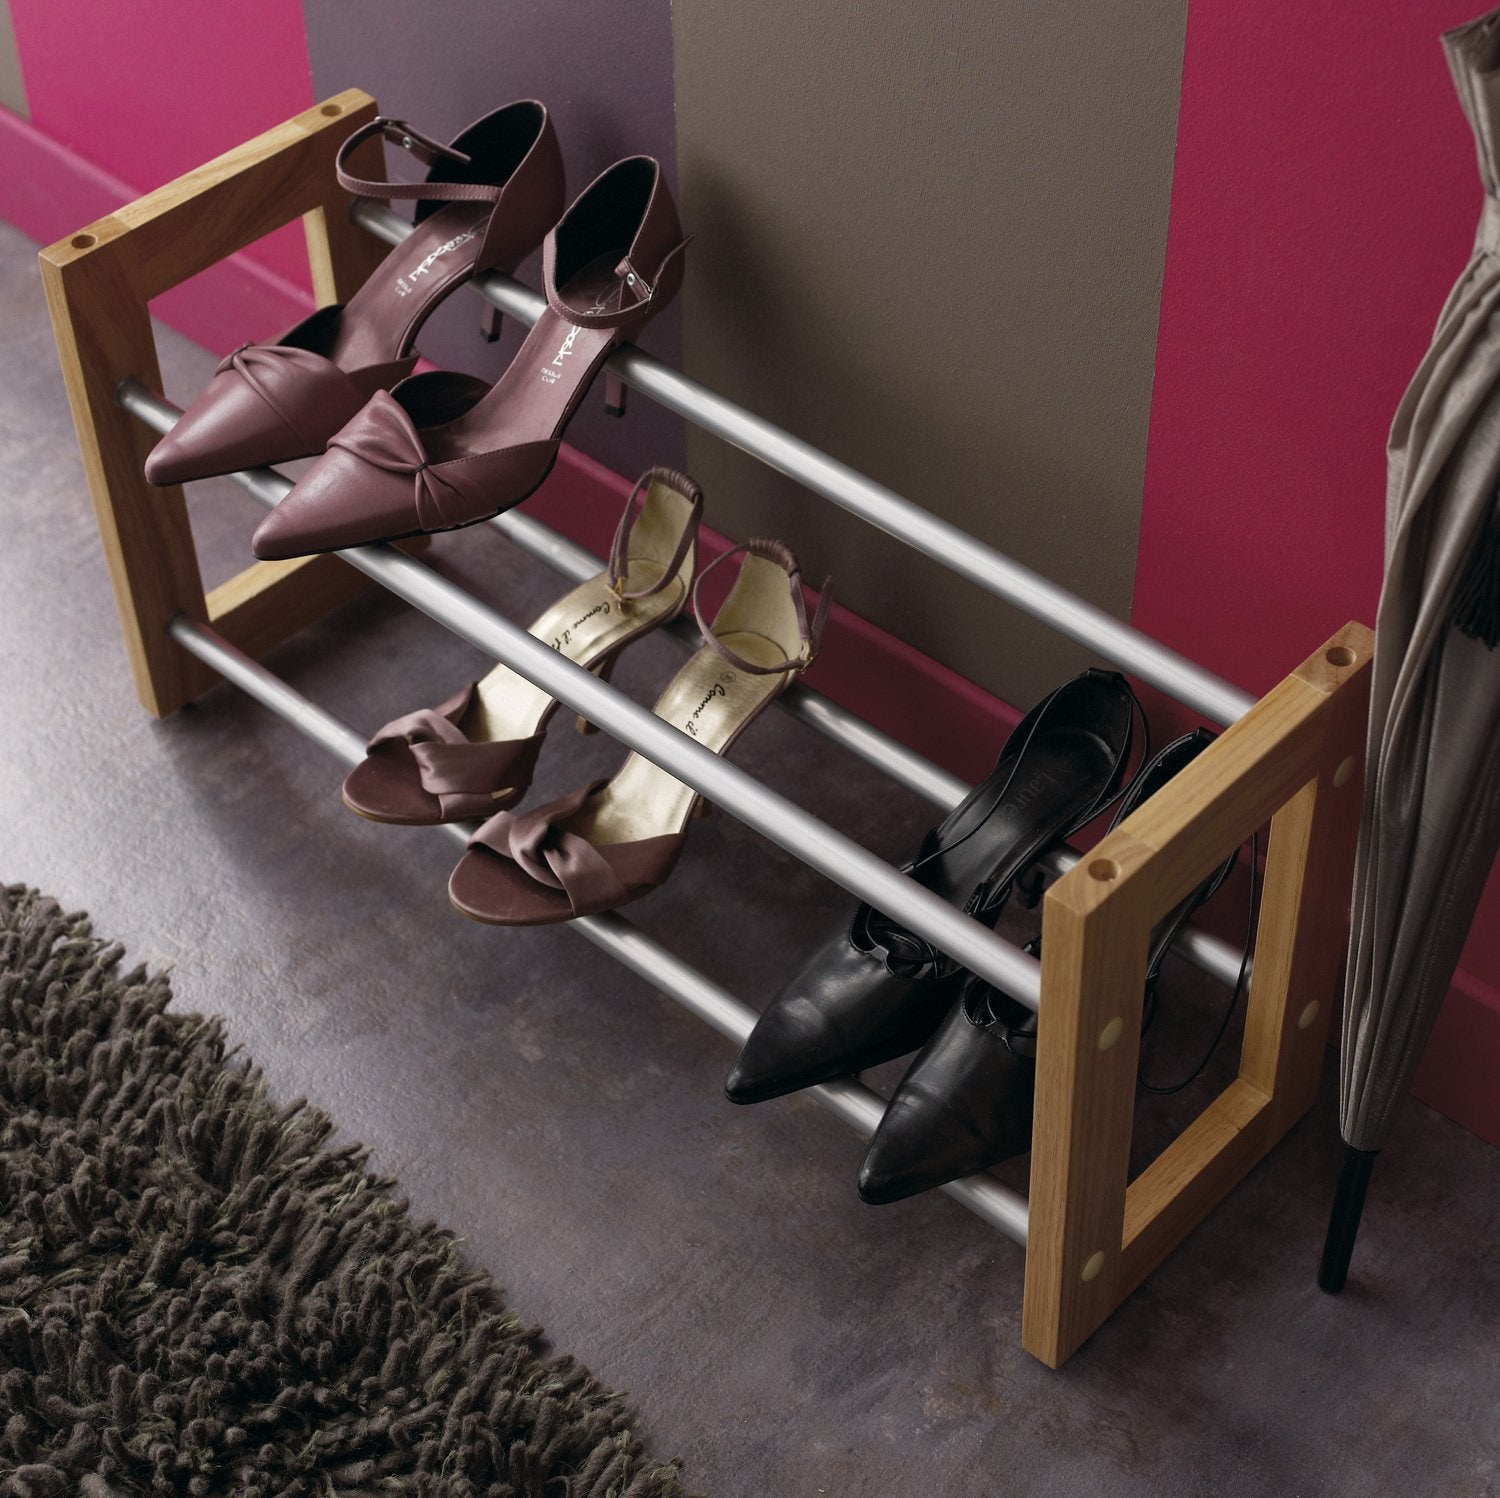 diaporama des astuces pour ranger vos chaussures. Black Bedroom Furniture Sets. Home Design Ideas